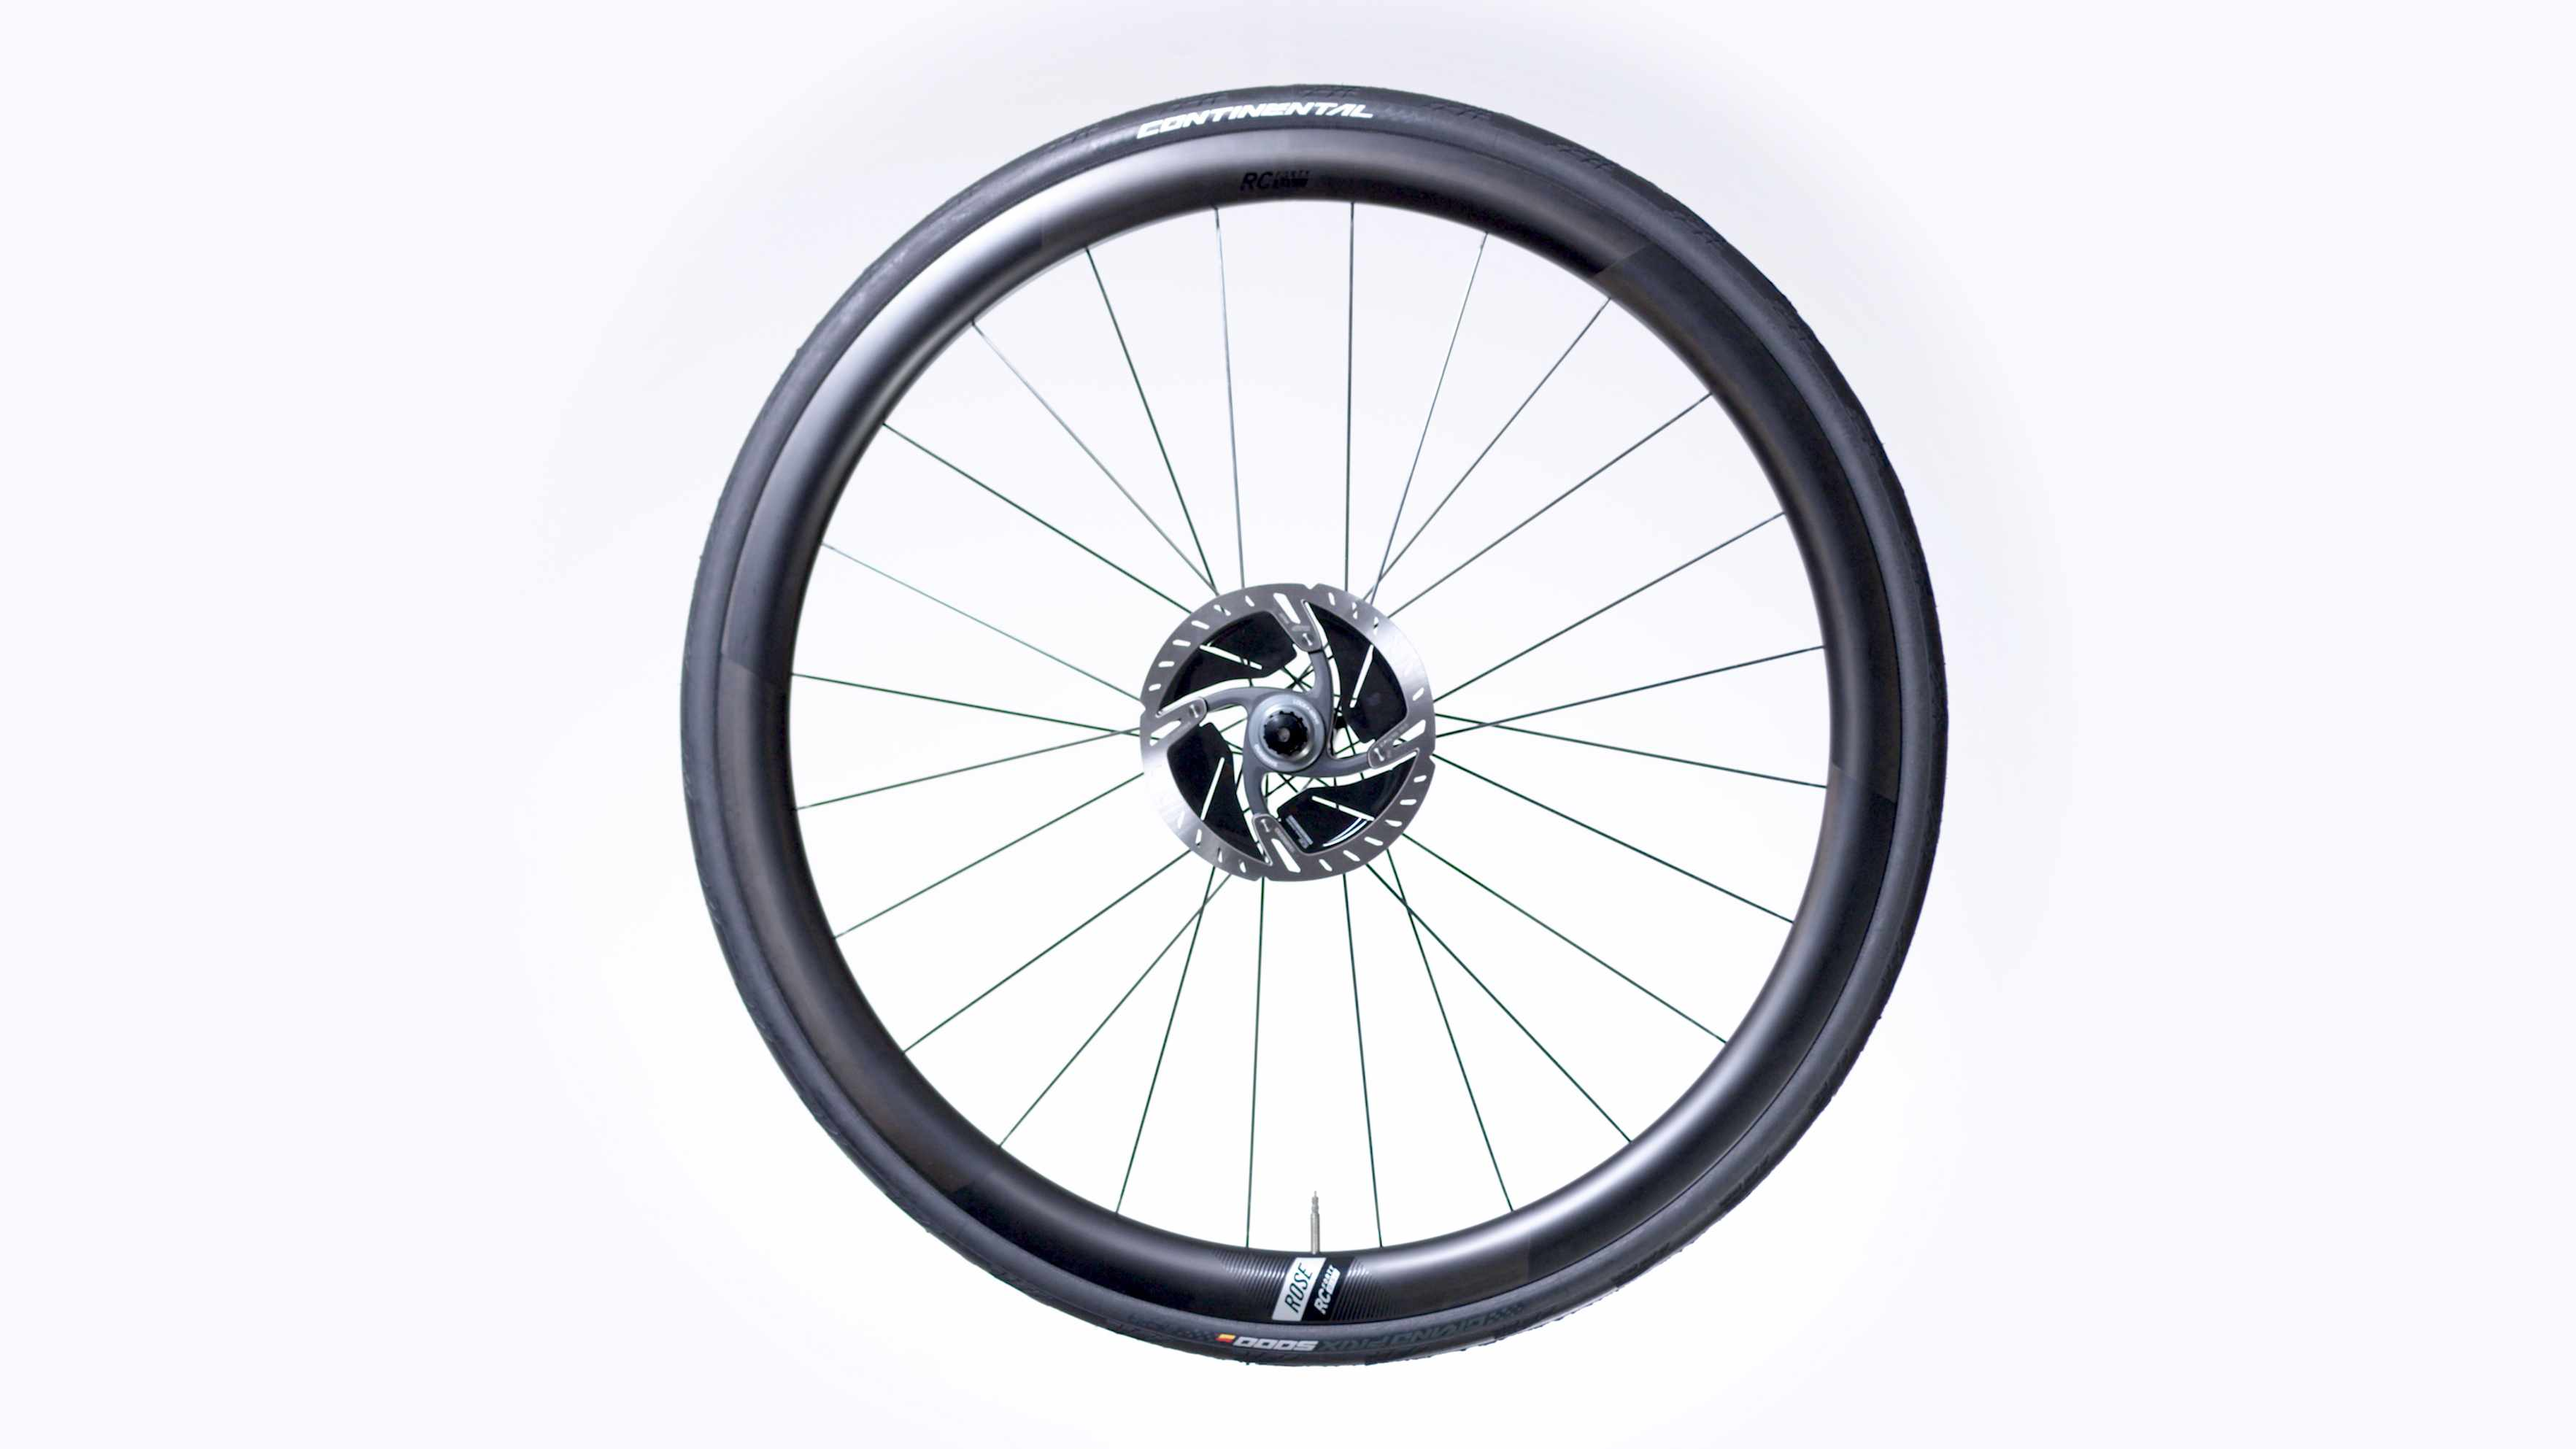 Rose has launched its own range of affordable carbon wheels